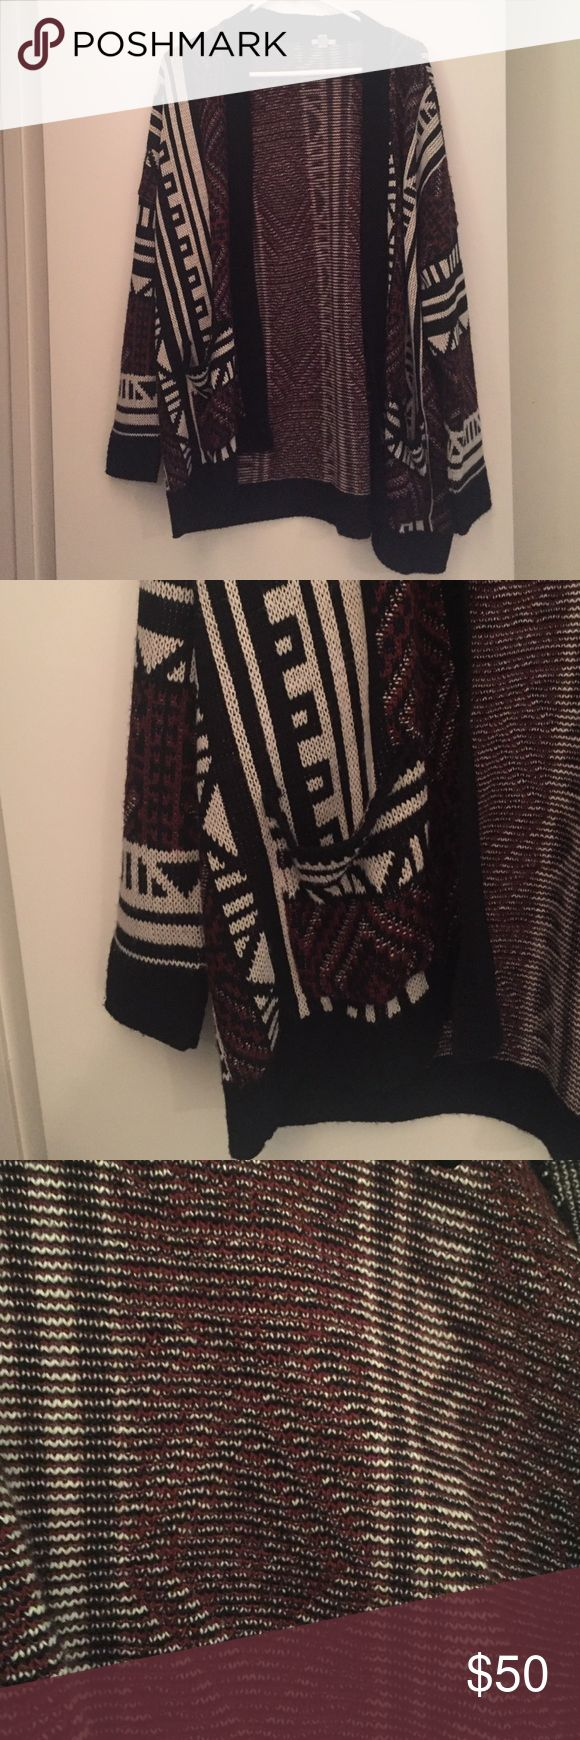 TRIBAL PRINT OPEN SWEATER NEVER WORN MARRON BLACK AND WHITE TRIBAL PRINT OVER SIZED OPEN SWEATER WITH POCKETS Urban Outfitters Sweaters Cardigans